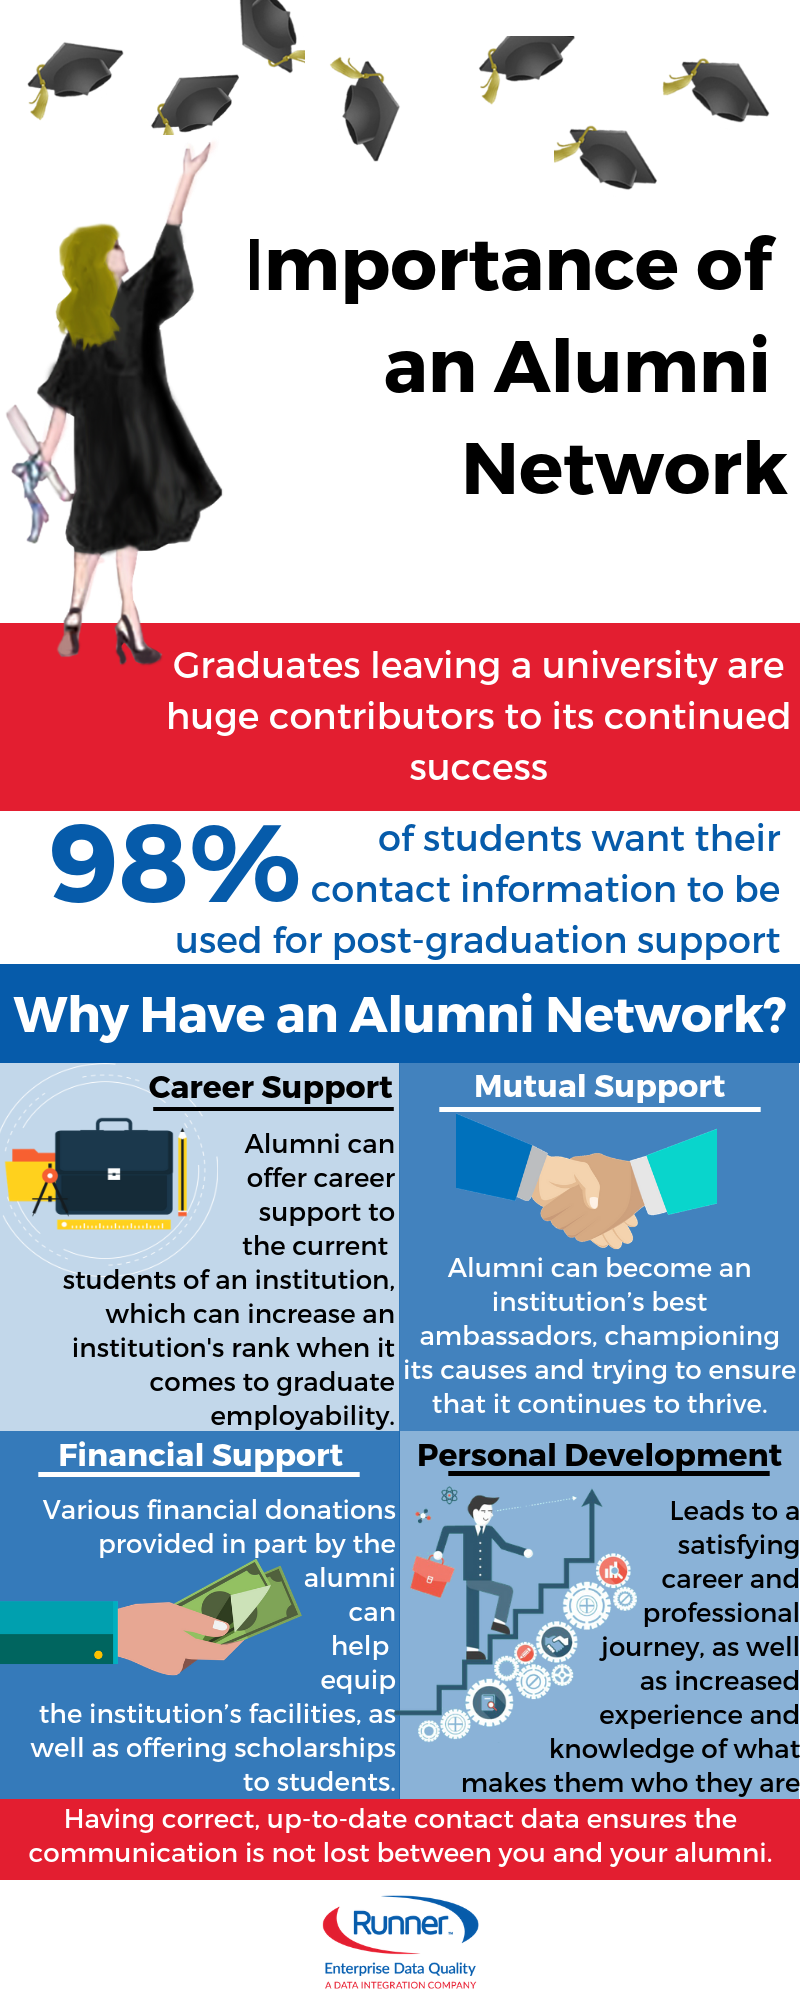 One of those steps is undoubtedly maintaining a healthy and engaged alumni network. It may not seem evident at first, but graduates leaving the university can contribute significantly to its continued success. However, for your institution to reap the benefits, you must first build the network. Let's have a look at why institutions need to have an alumni network and how to create one.